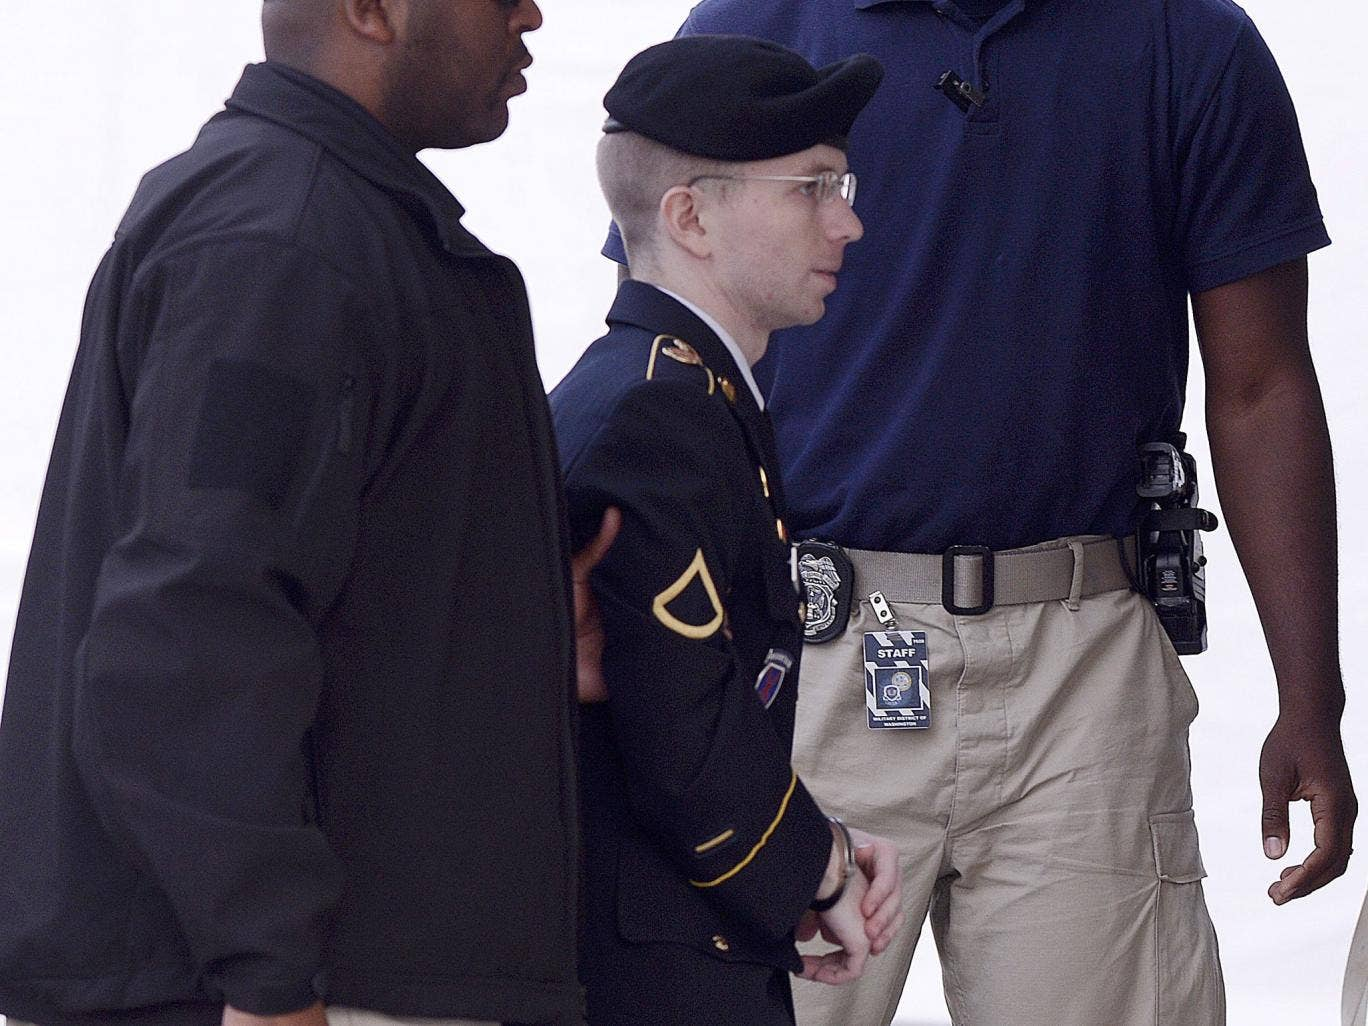 Bradley Manning is escorted into the courthouse